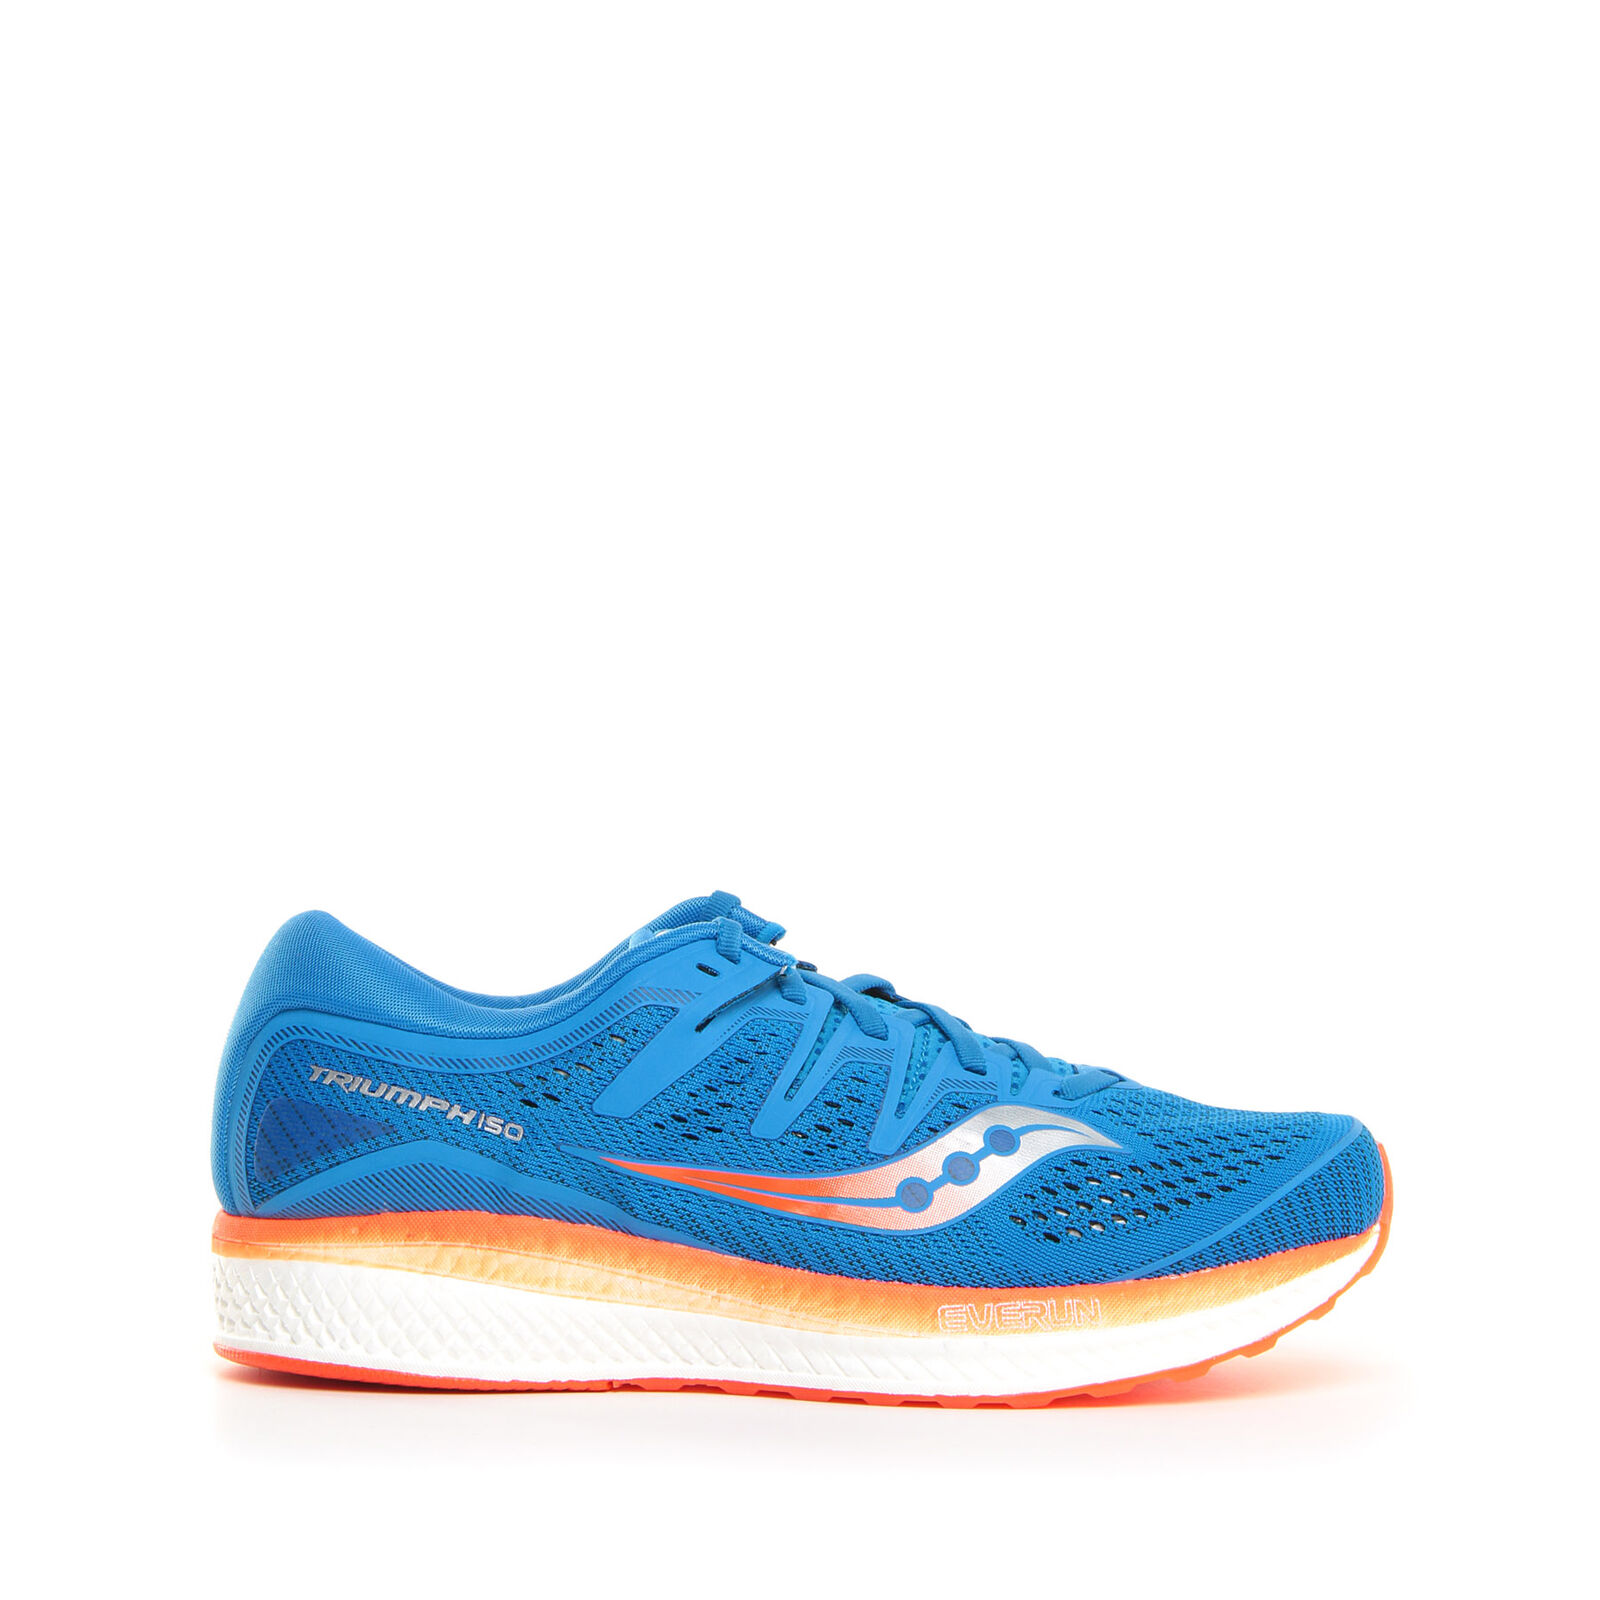 SAUCONY TRIUMPH ISO 5 zapatos RUNNING hombres 20462 36